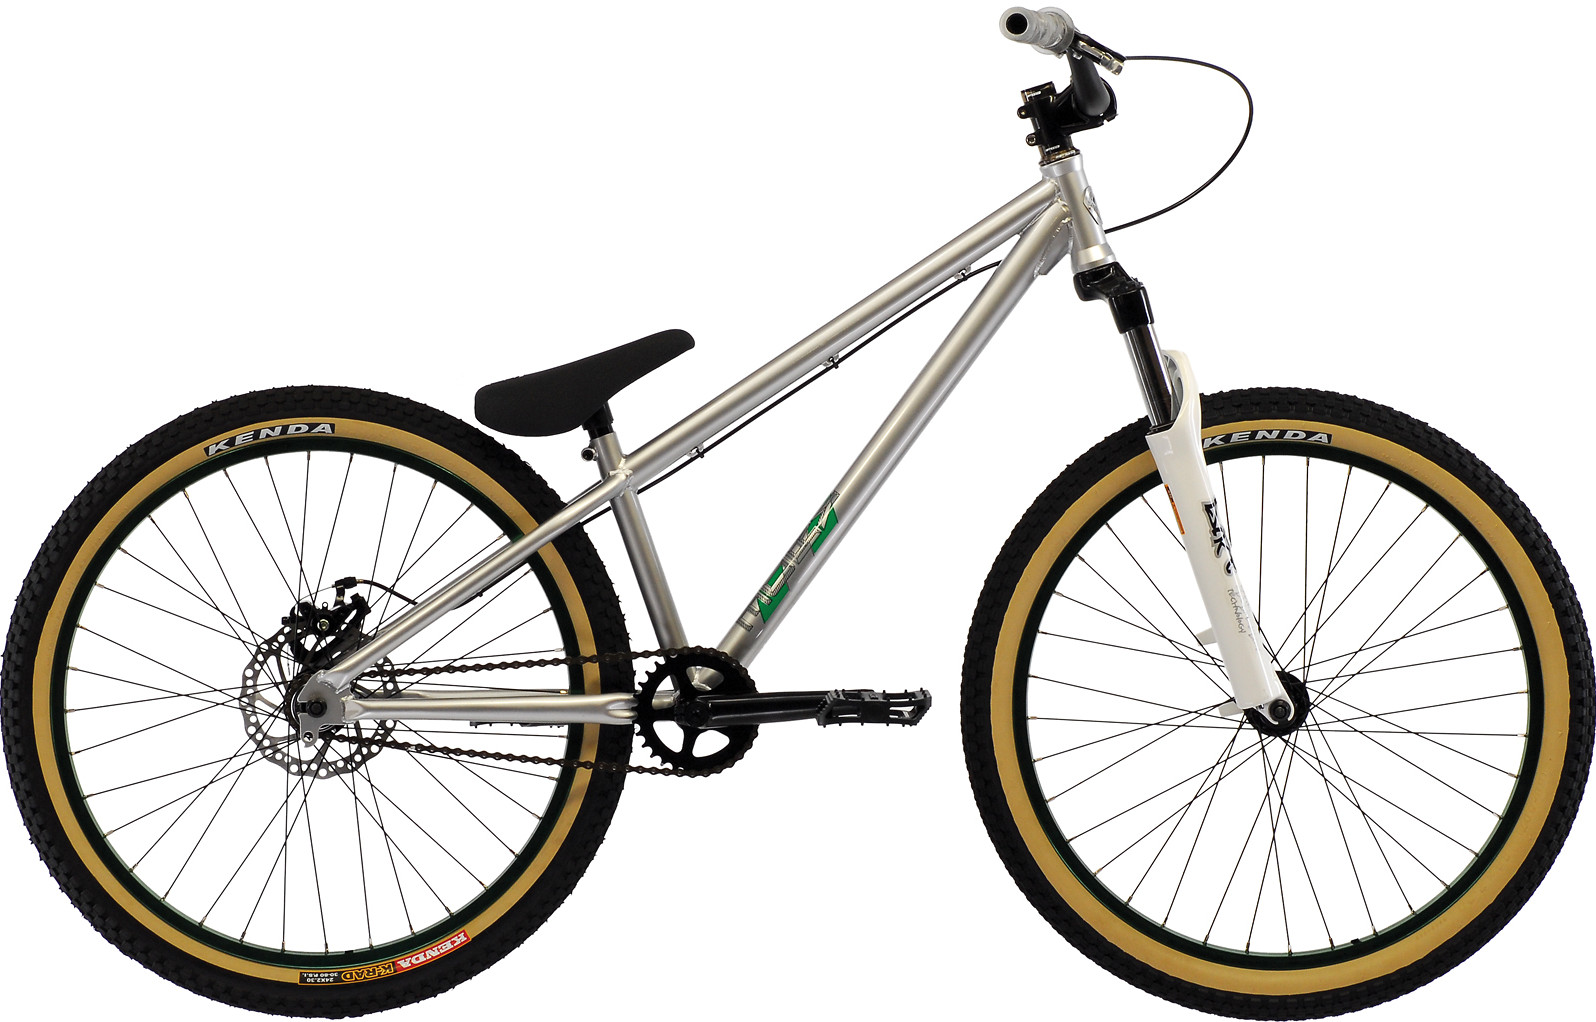 2012 Norco Ryde 24 Quot Bike Reviews Comparisons Specs